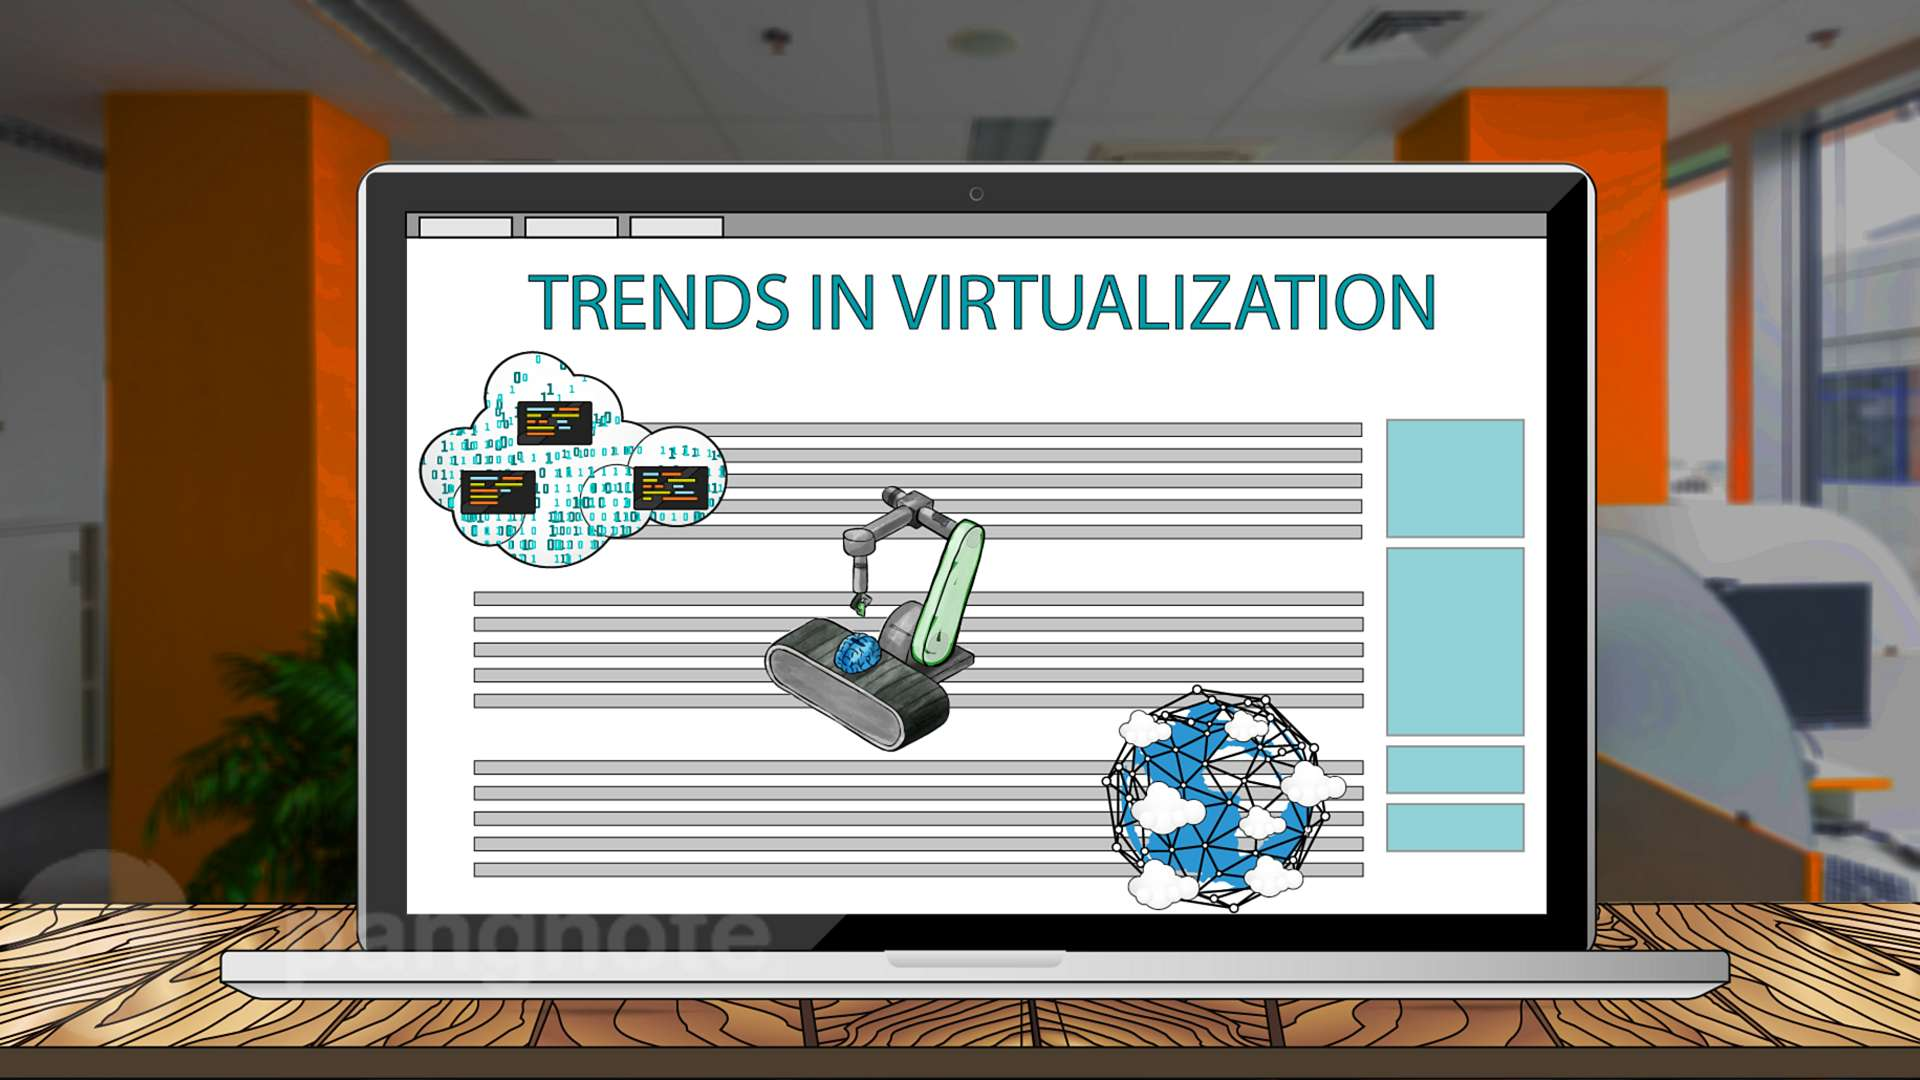 Serverless computing, multi-clouds and automation of IT infrastructure as trends in virtualization